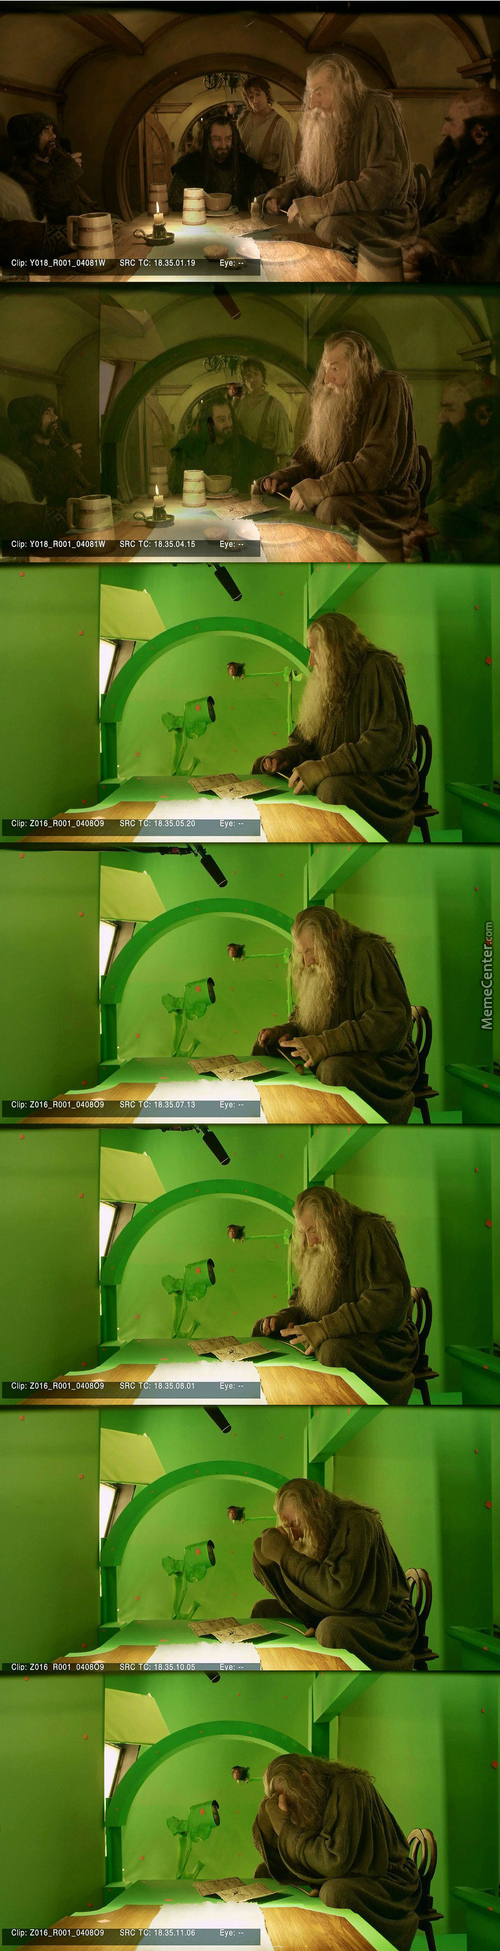 The Lonely Wizard